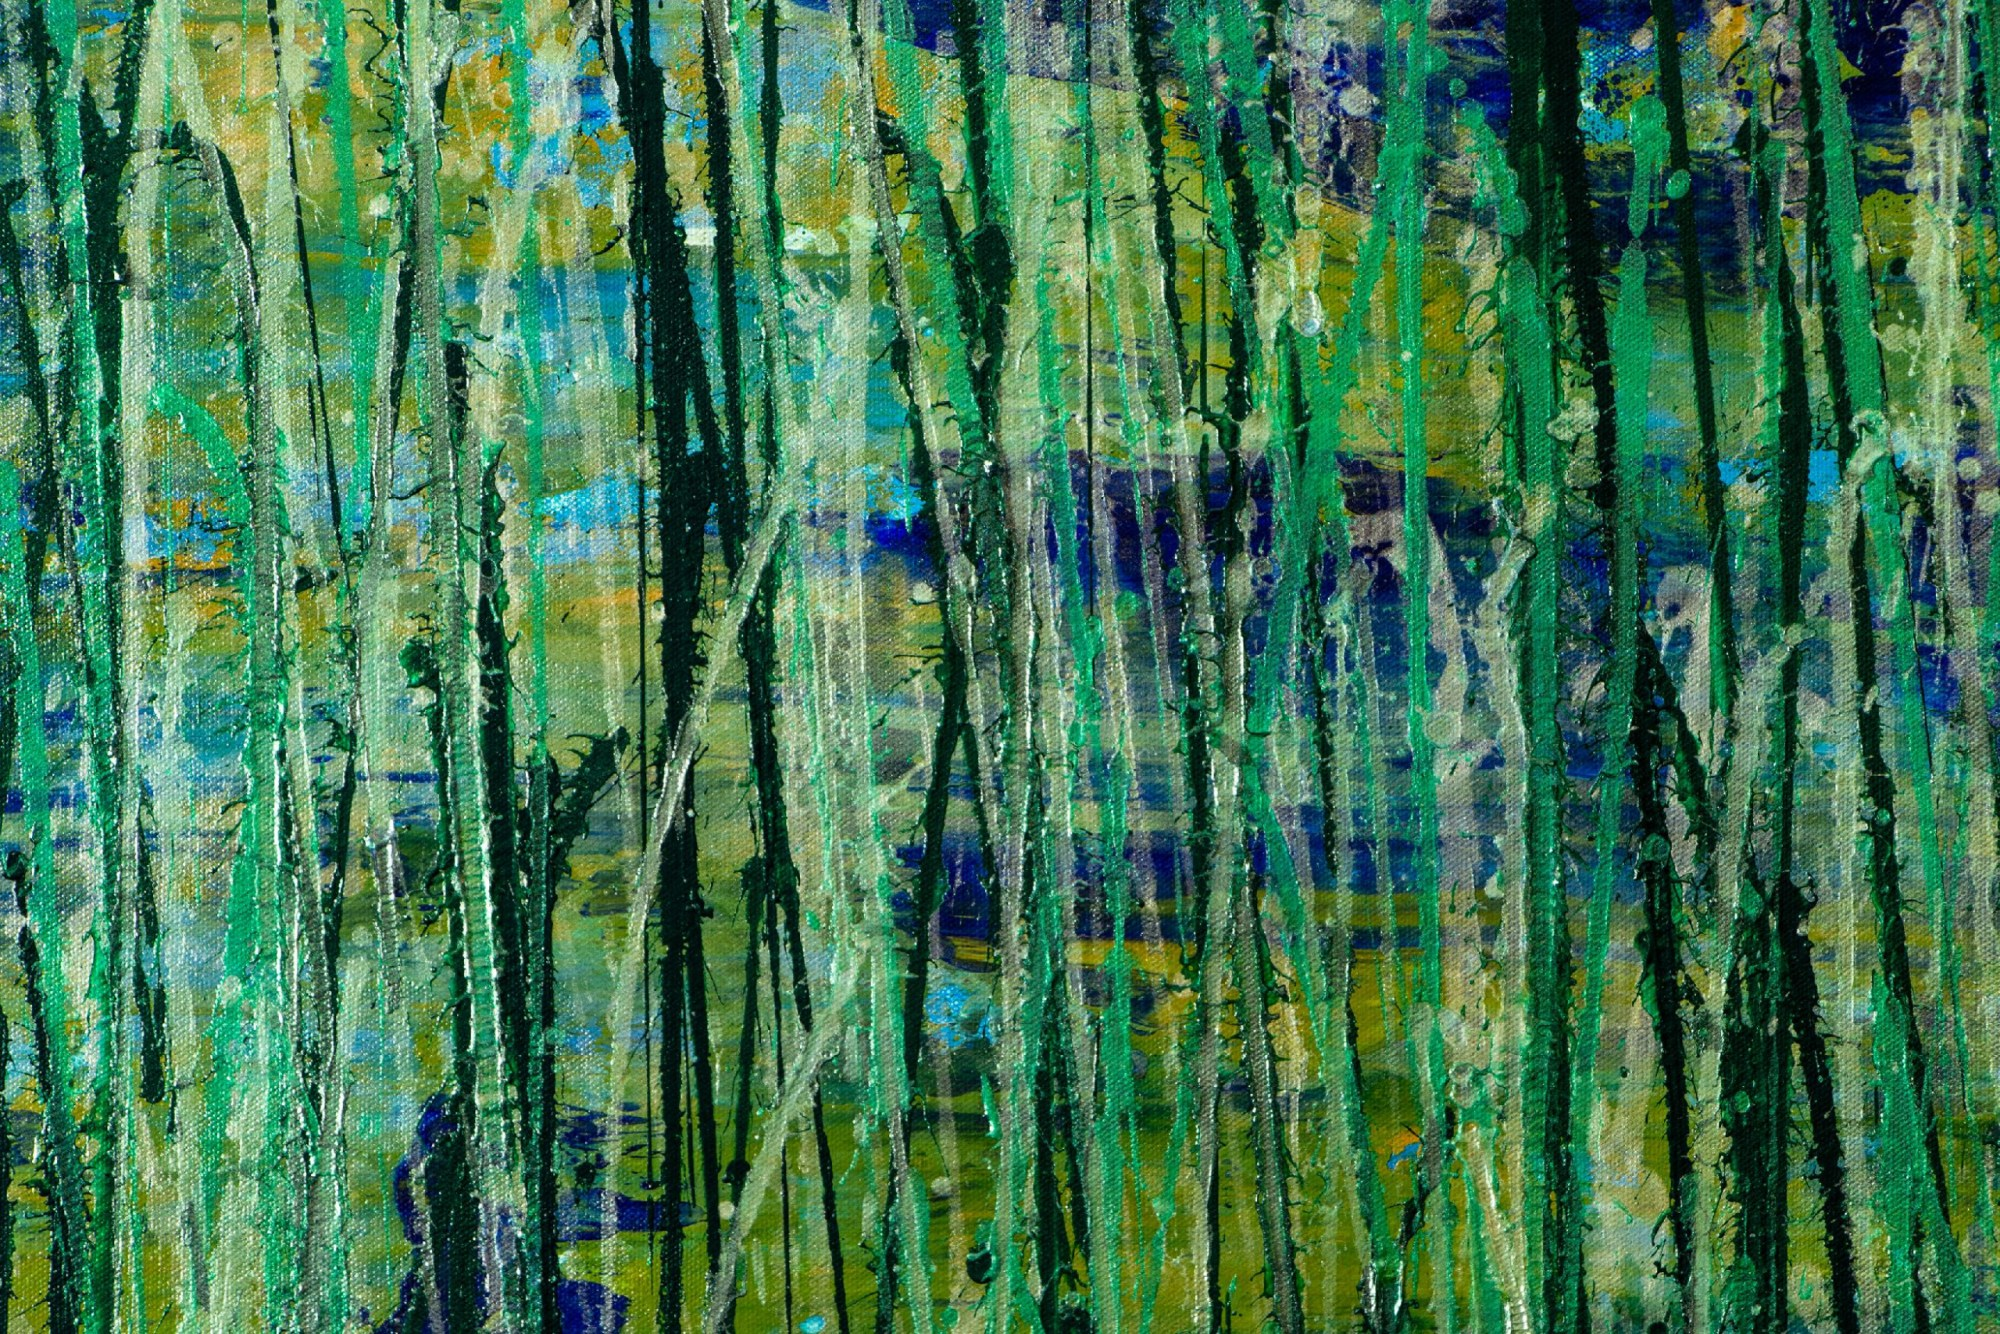 Detail - Green forest (Silver lights intrusions) (2021) 34 x 69 inches by Nestor Toro